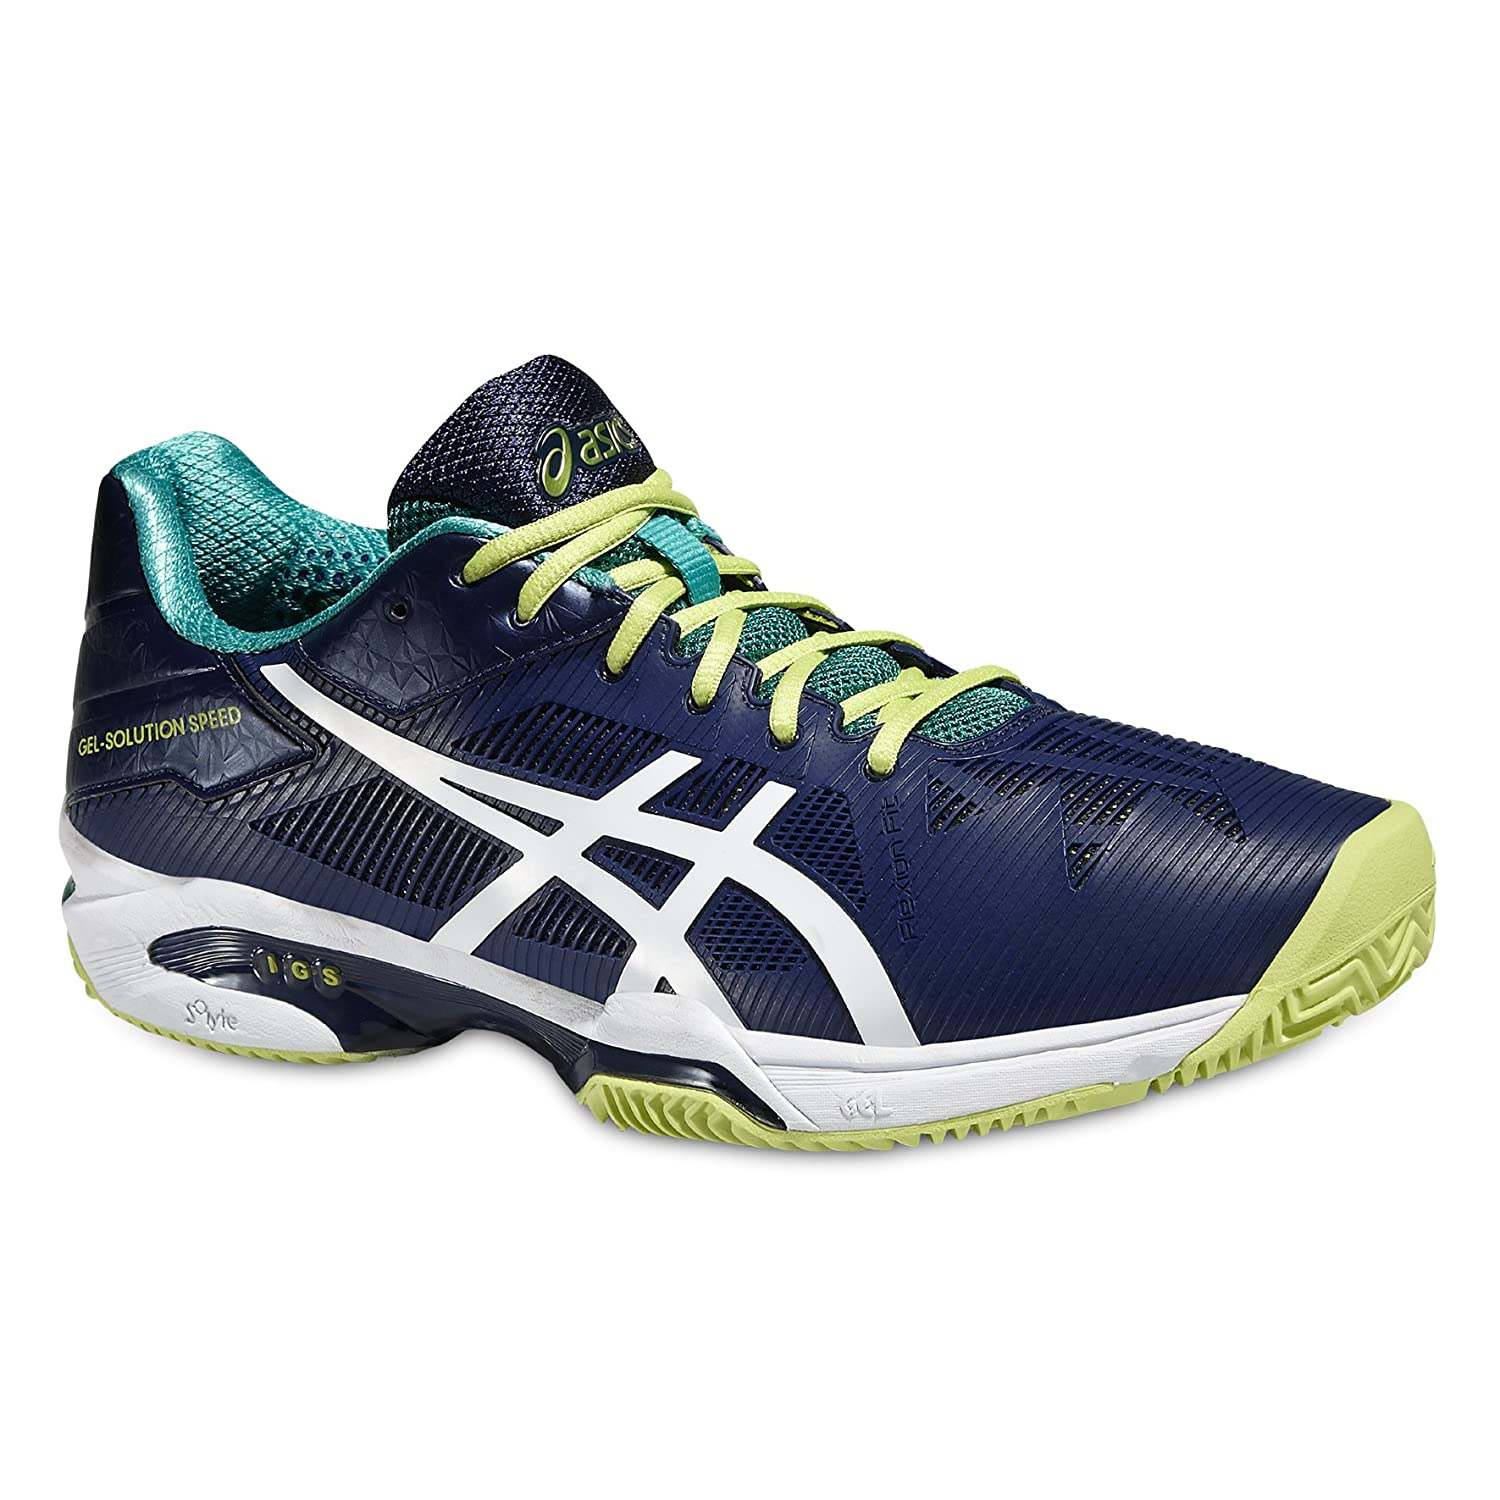 Mens Gel-Solution Speed 3 Gymnastics Shoes, Grey Asics